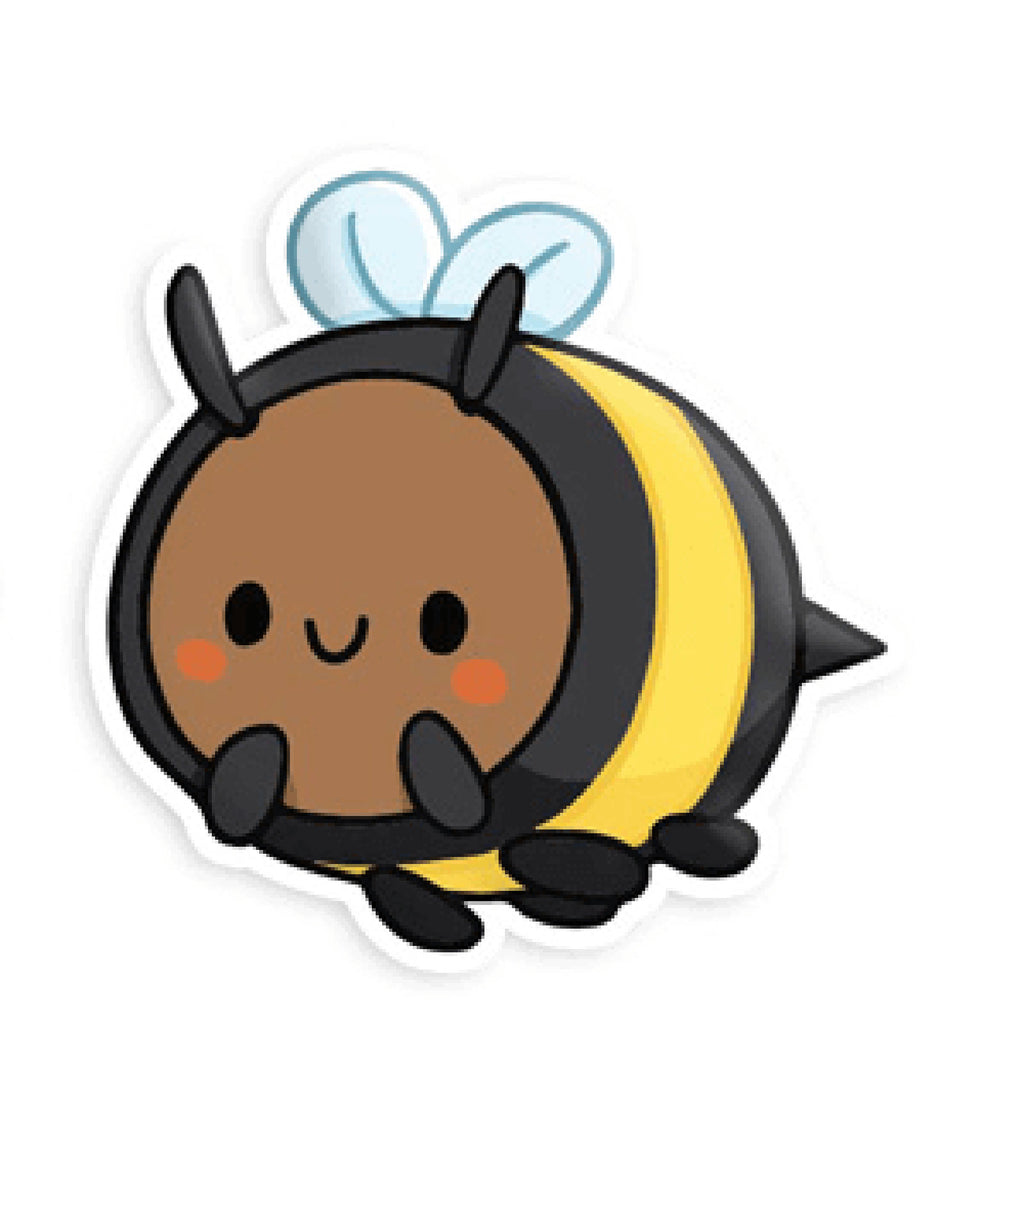 Squishable Vinyl Sticker Bumblebee